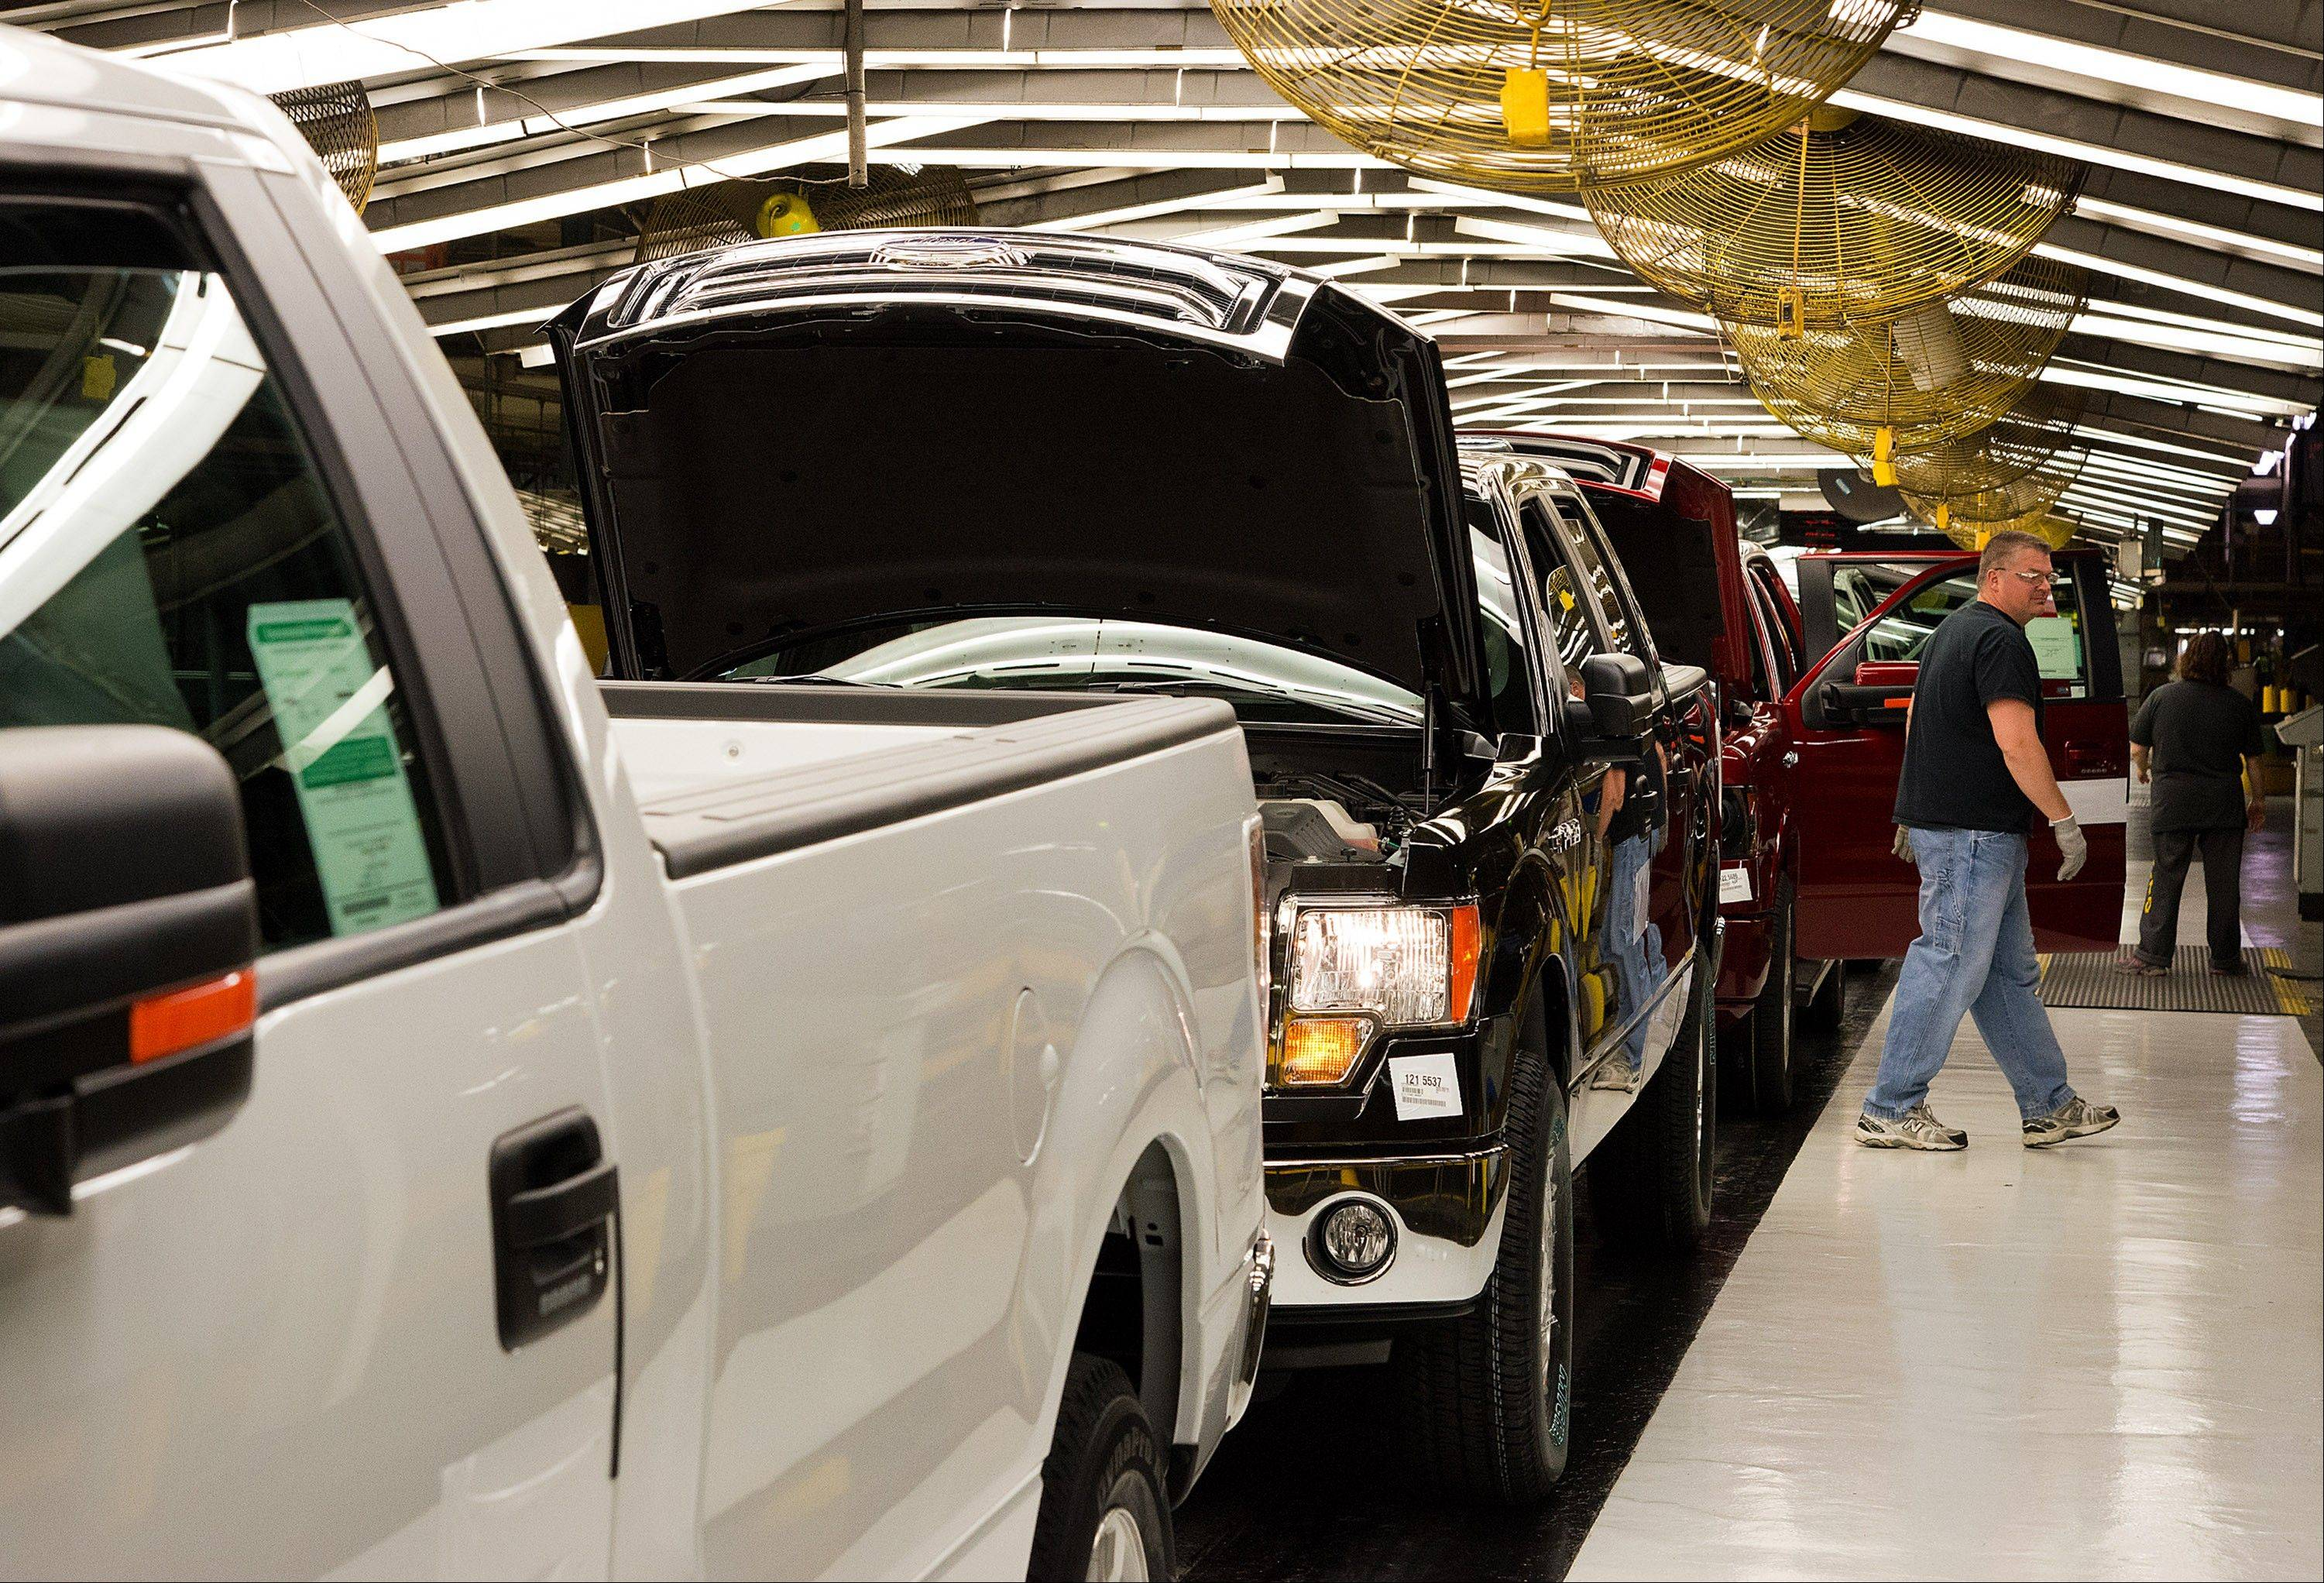 Automotive companies invested about $43 billion in North America from 2010 to 2012, of which $2.3 billion, or 5 percent, was pegged to Canada, according to the Center for Automotive Research. The U.S. and Mexico received $3.7 billion each last year, while Canada took about $200 million, the Ann Arbor, Michigan-based researcher said.